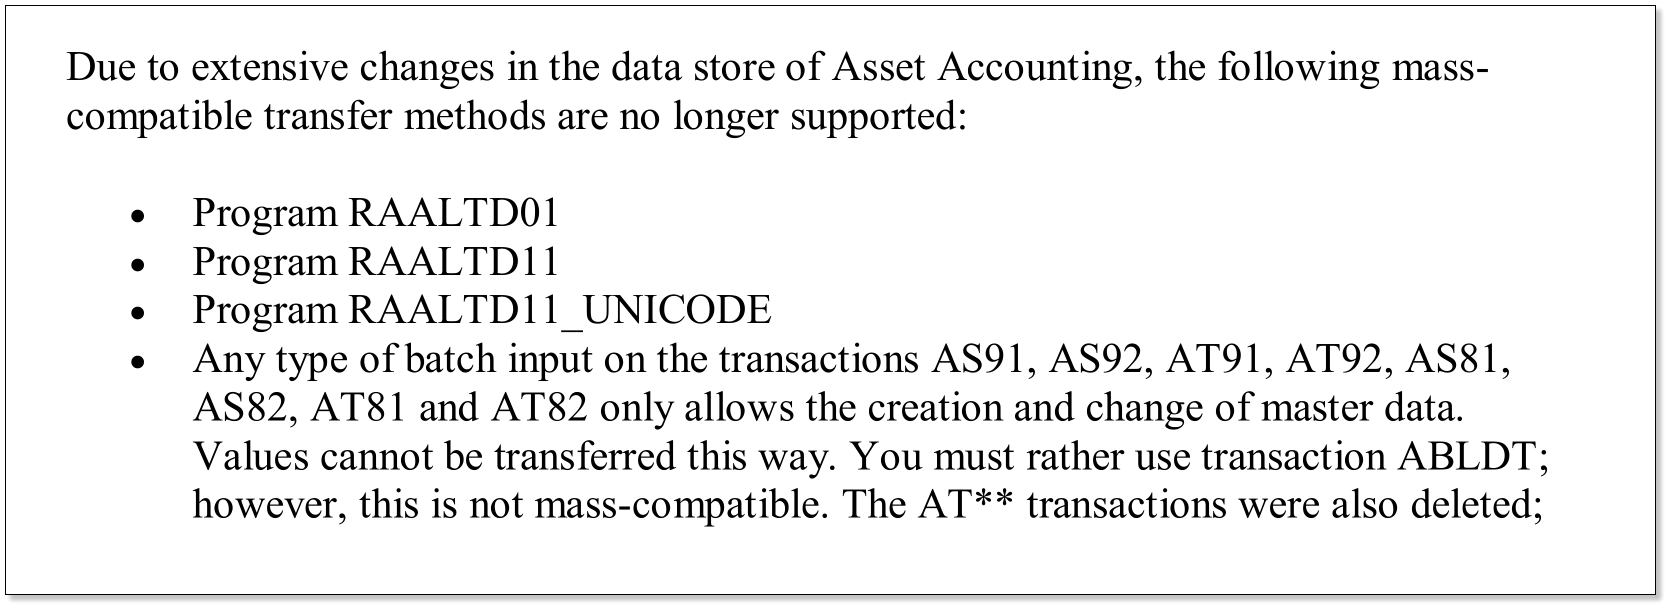 S/4HANA New Asset Accounting: Changes in Legacy Data